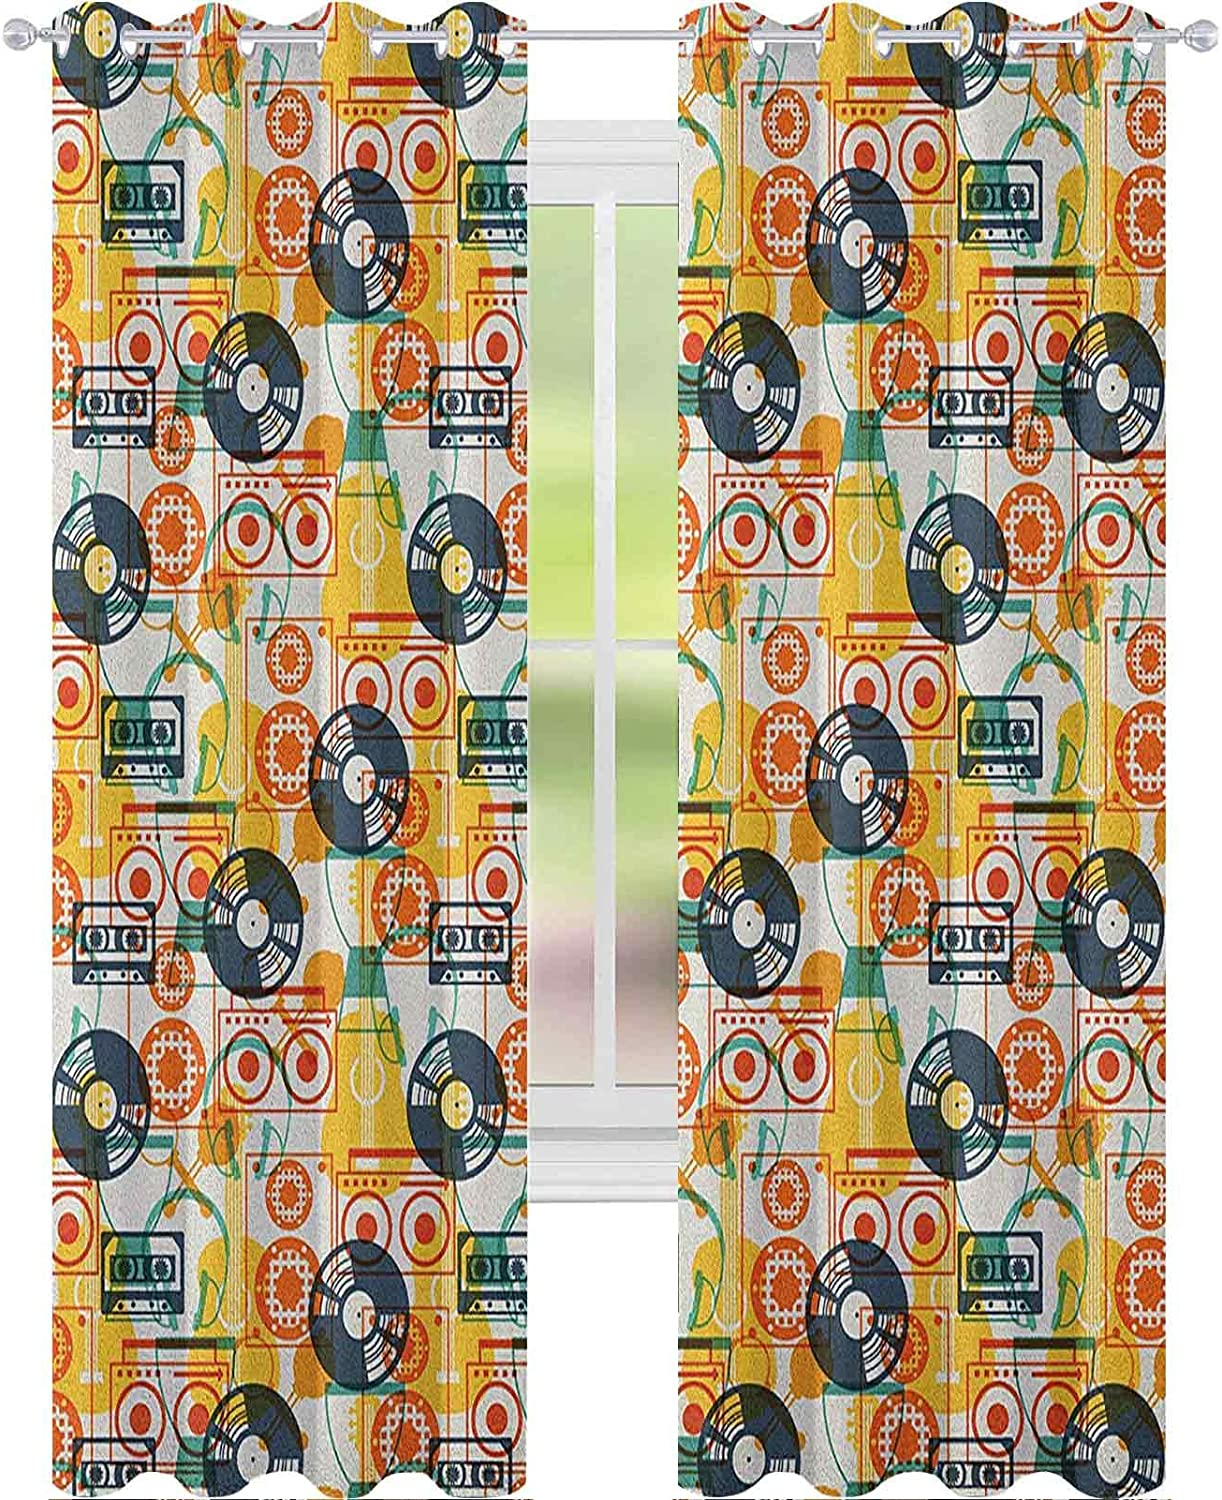 Printed Bedroom Max 80% OFF Curtain Max 69% OFF Pattern with Flat Instruments in Musical